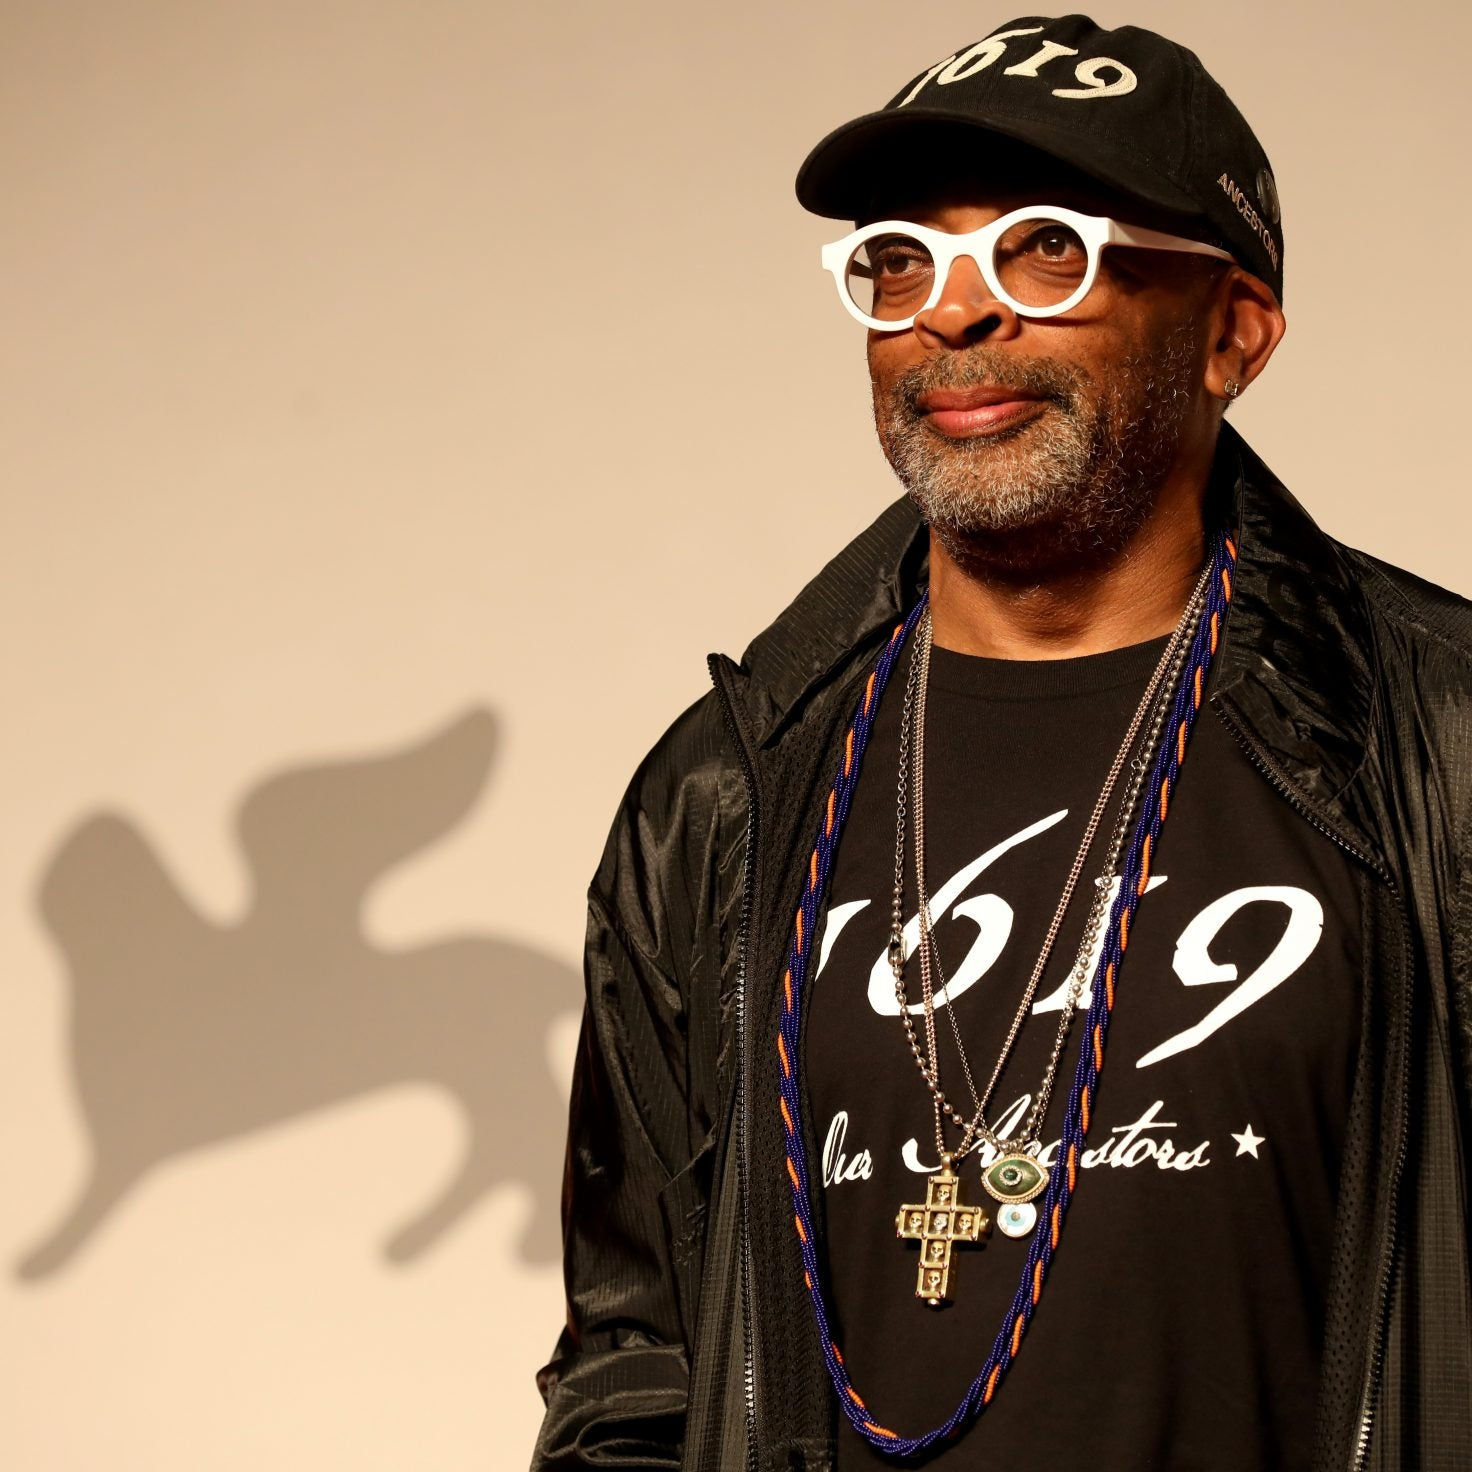 Spike Lee's Latest Short Film Is A 'Love Letter' To New York